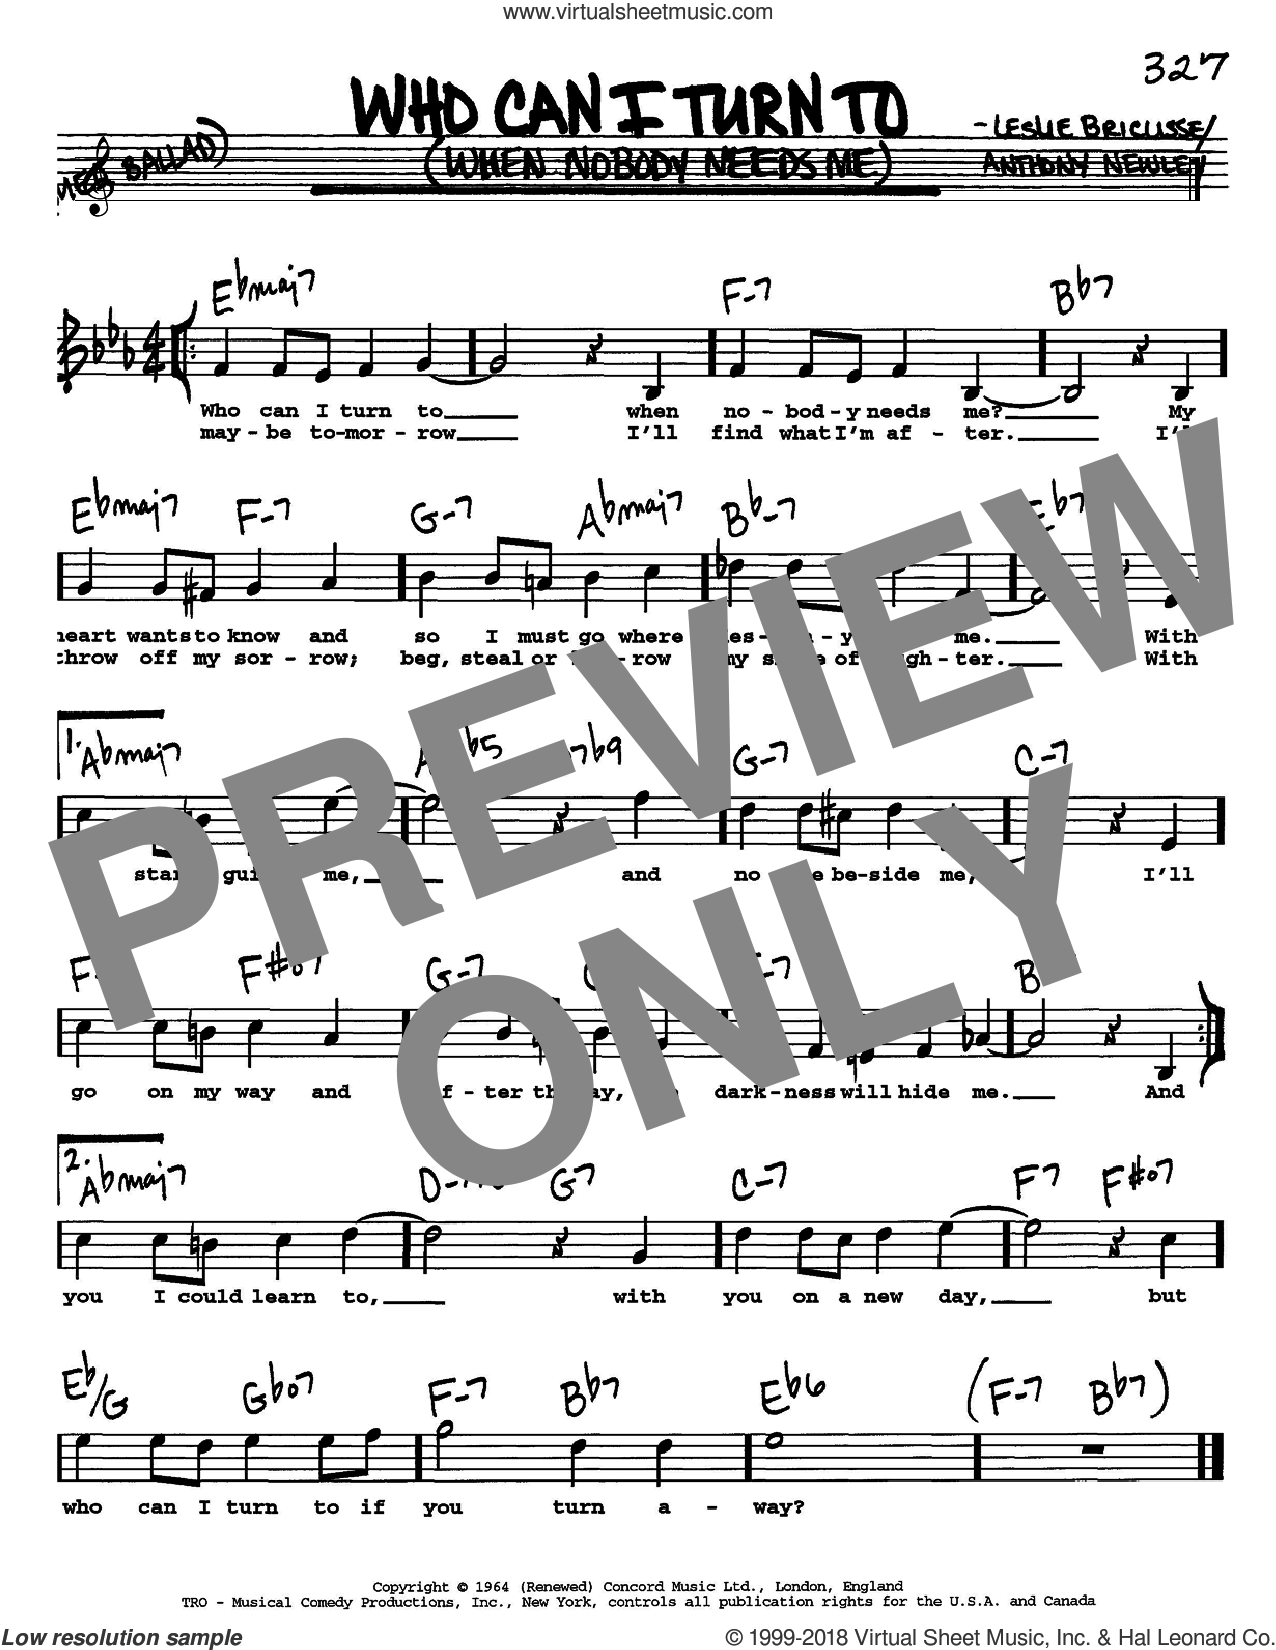 Who Can I Turn To (When Nobody Needs Me) sheet music for voice and other instruments (Vocal Volume 1) by Leslie Bricusse, Tony Bennett and Anthony Newley. Score Image Preview.